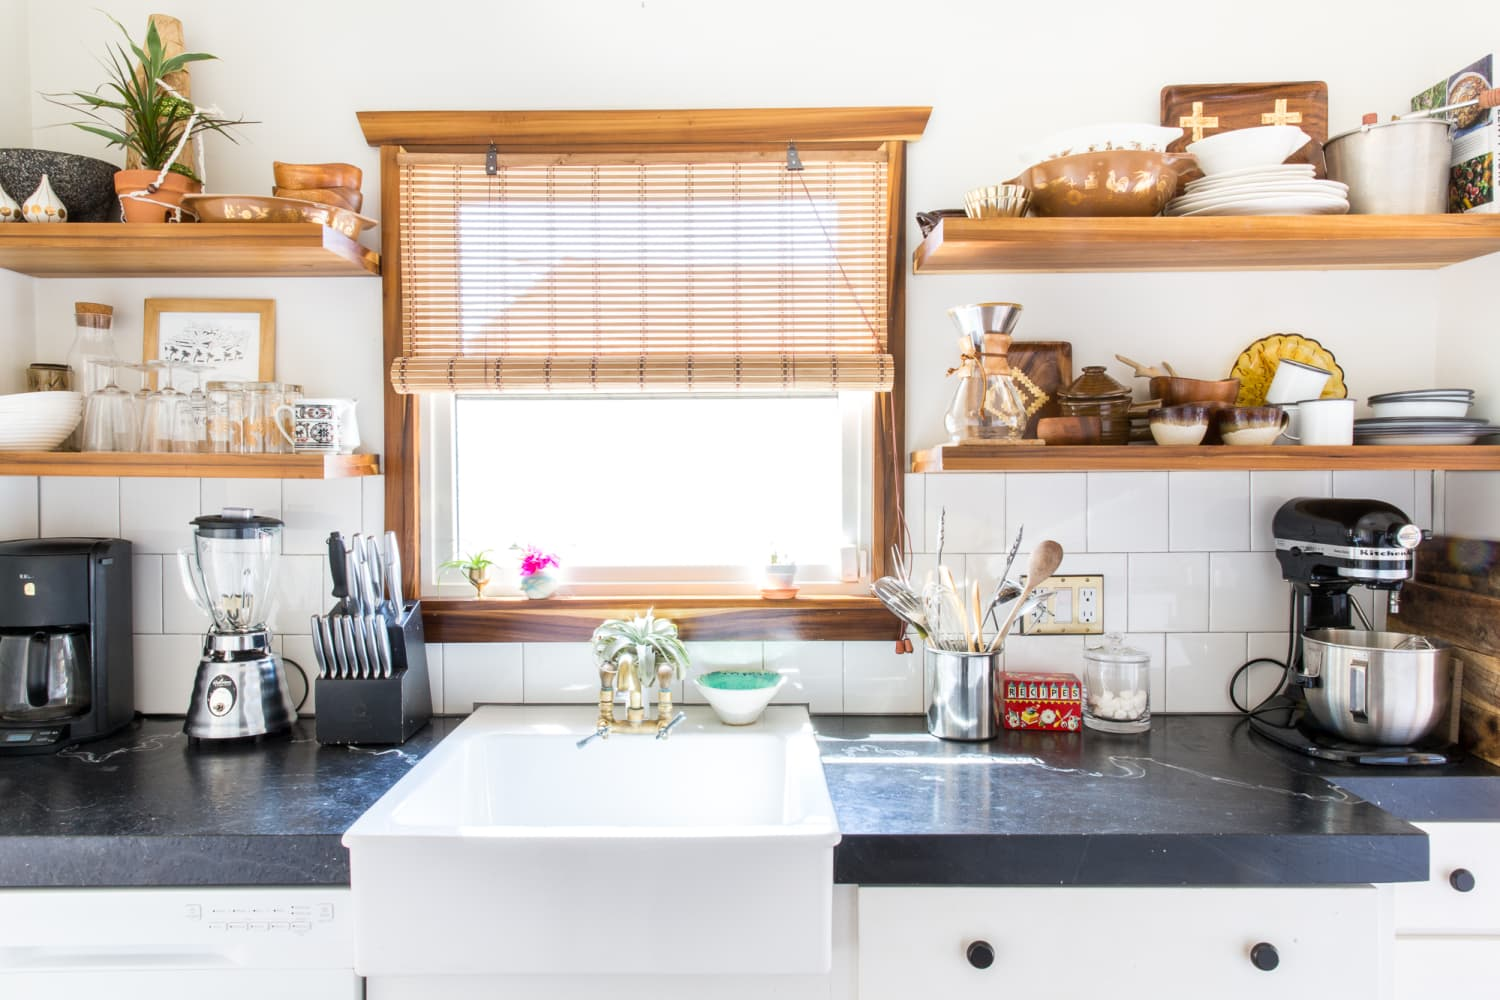 10 Little Kitchen Luxuries Under $25 That You'll Use (and Love) All the Time